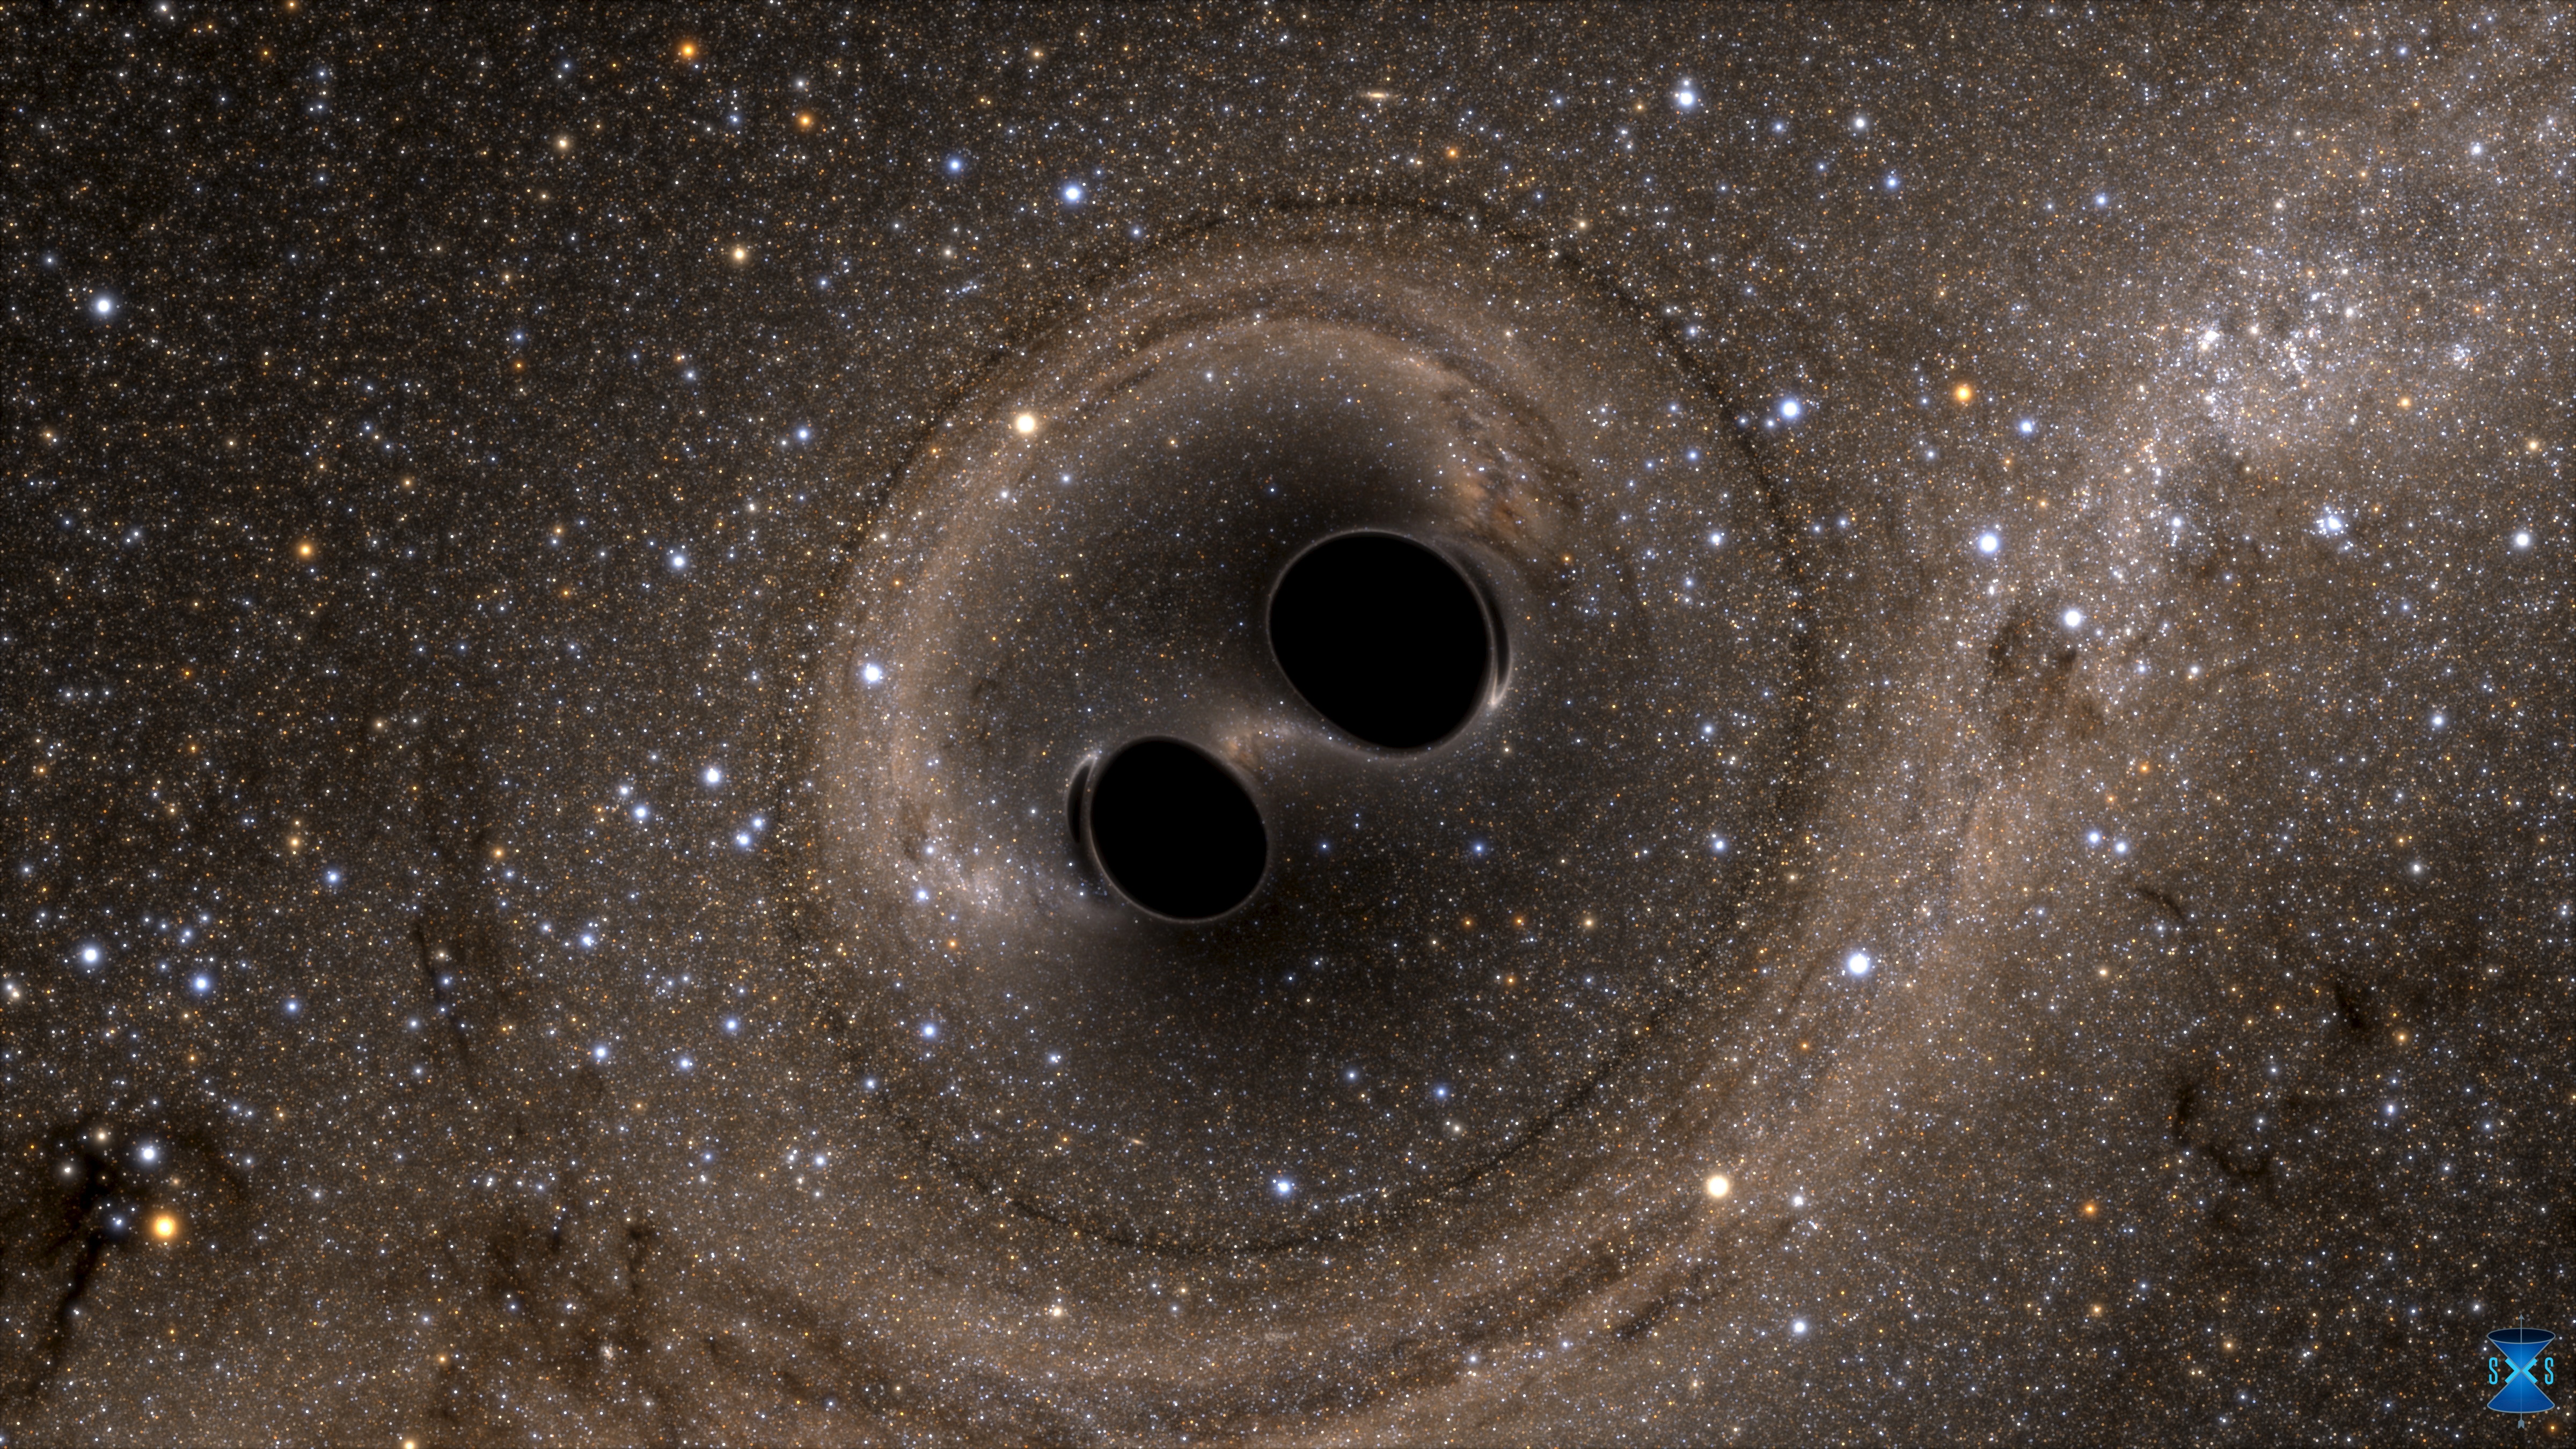 Computer simulation of two black holes colliding